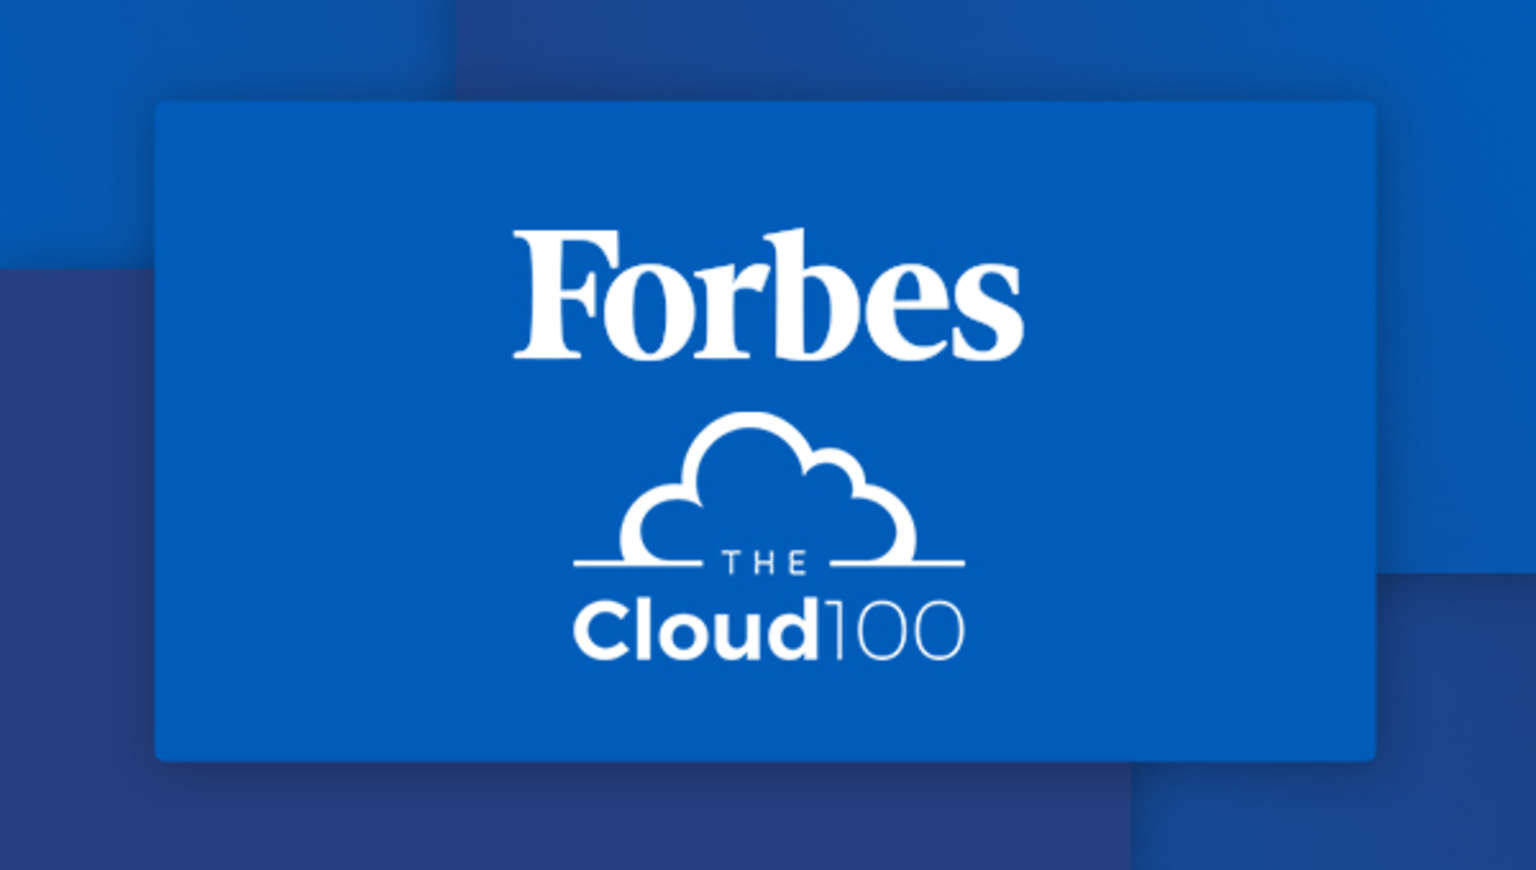 Dan Springer talks about making the Forbes Cloud 100